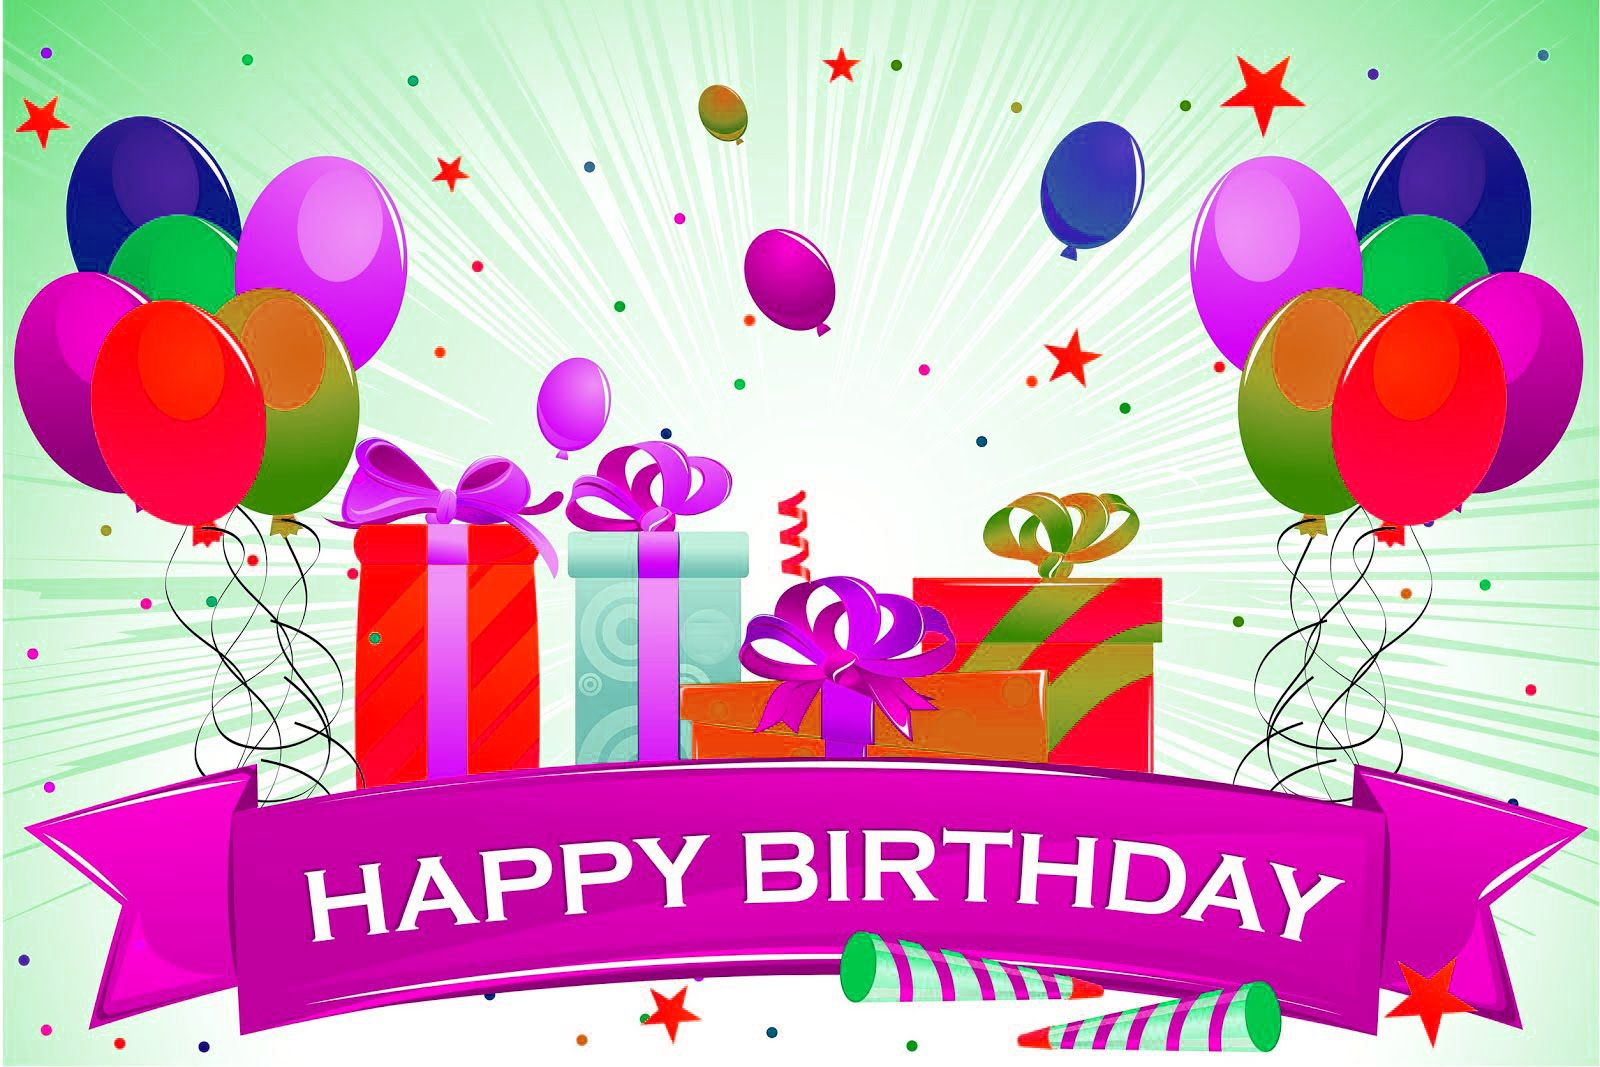 birthday cards online HD Wallpapers Download Free birthday cards – Free Birthday Cards Online